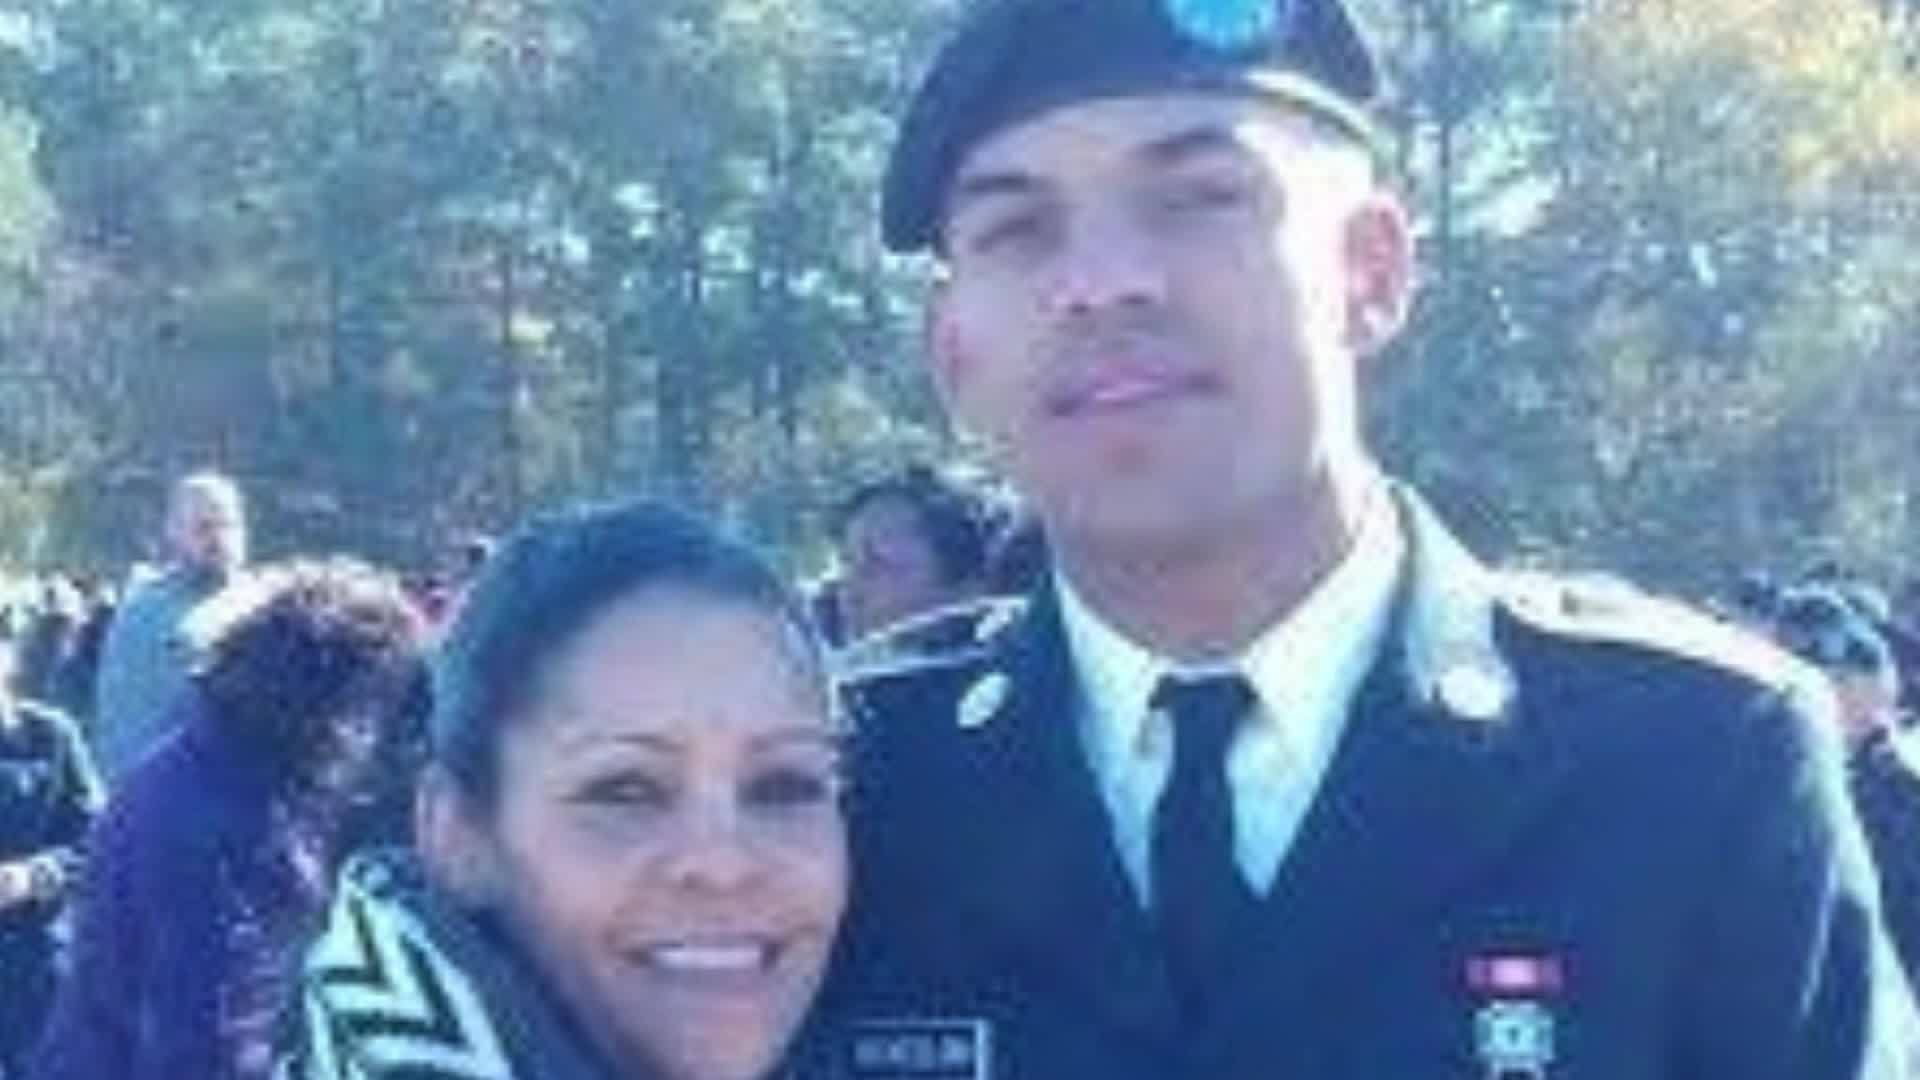 Army veteran left paralyzed after mistaken identity shooting